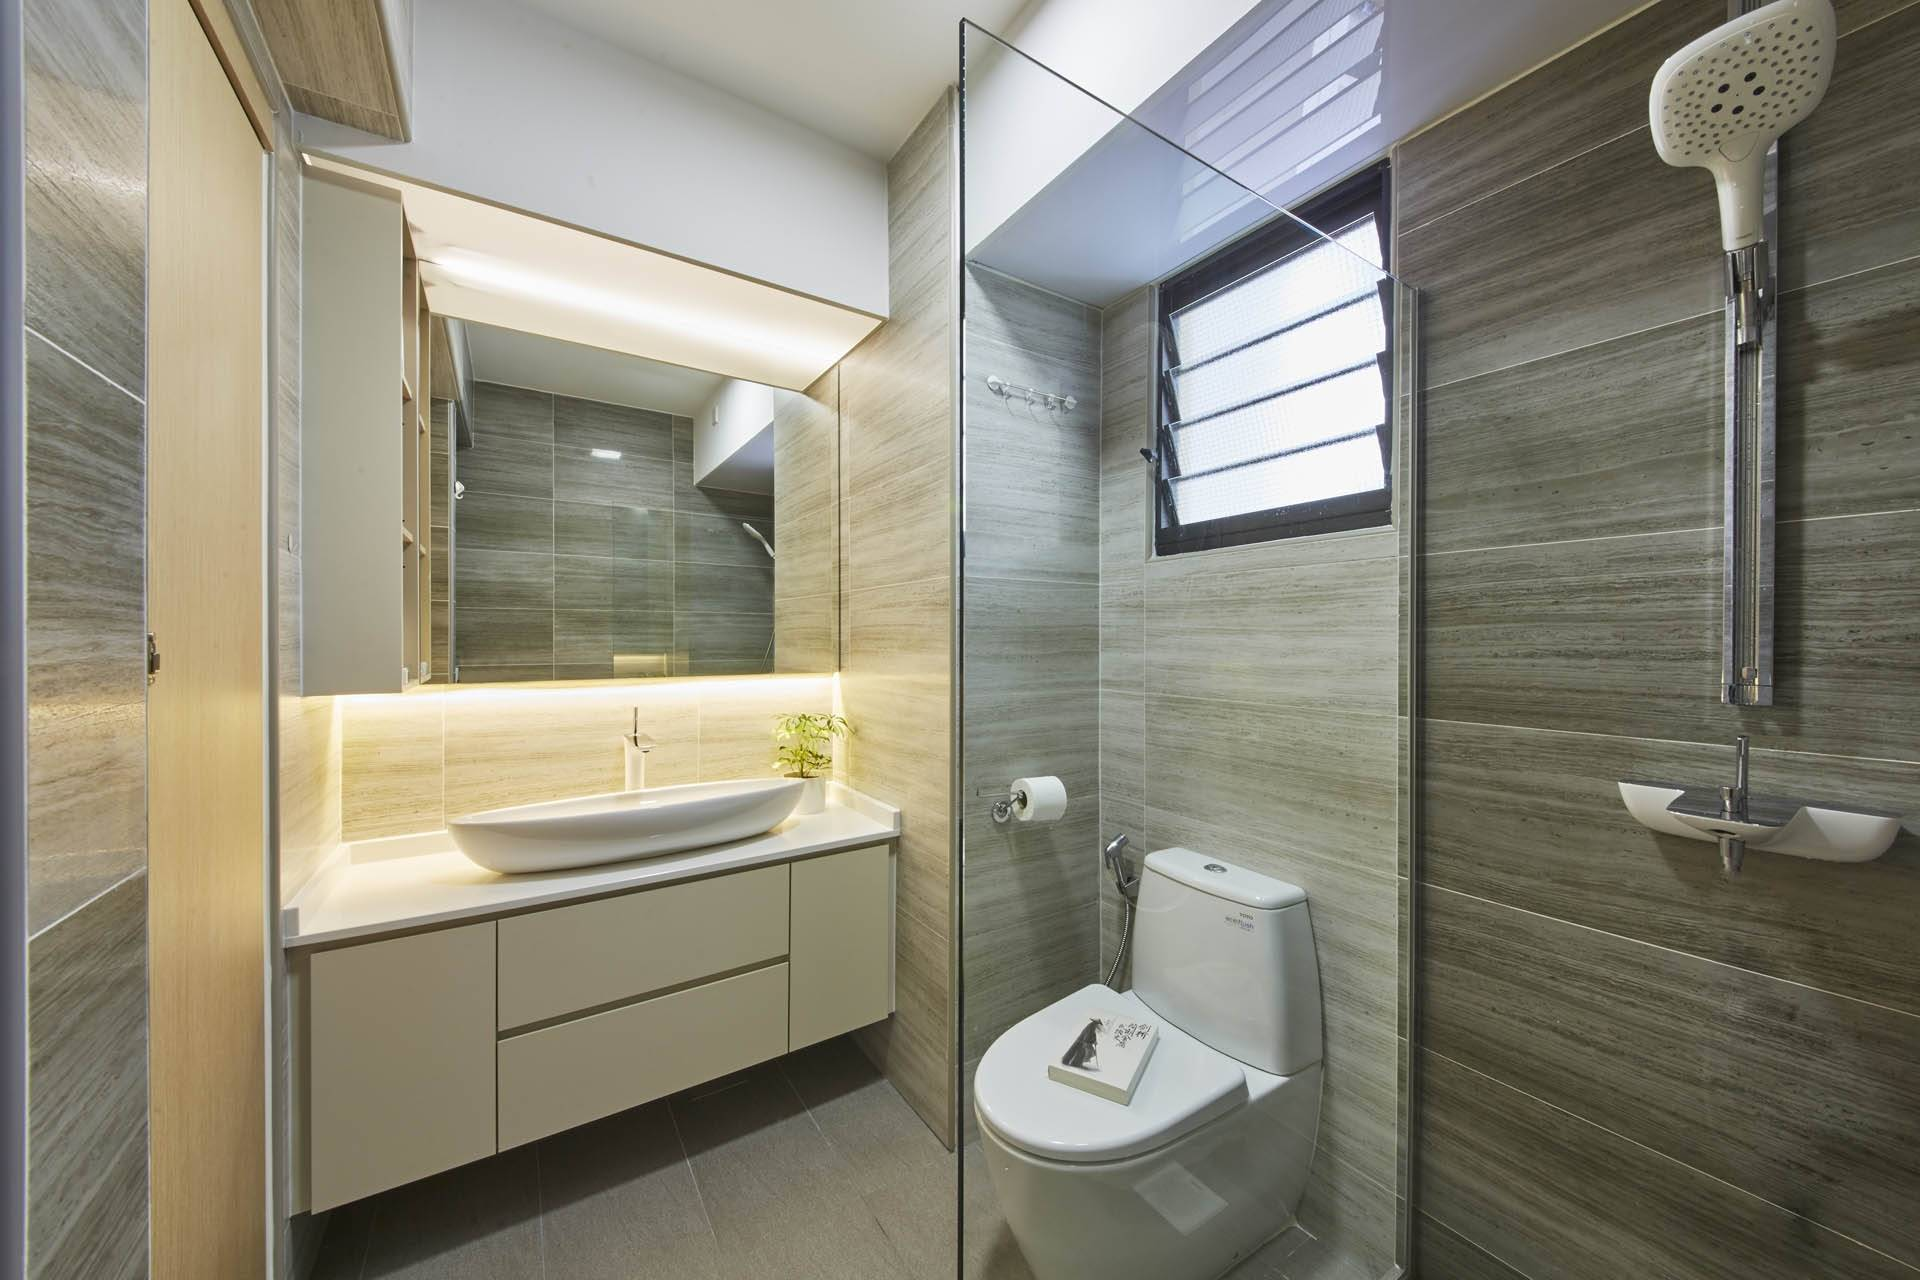 Hdb bathroom design for New washroom designs